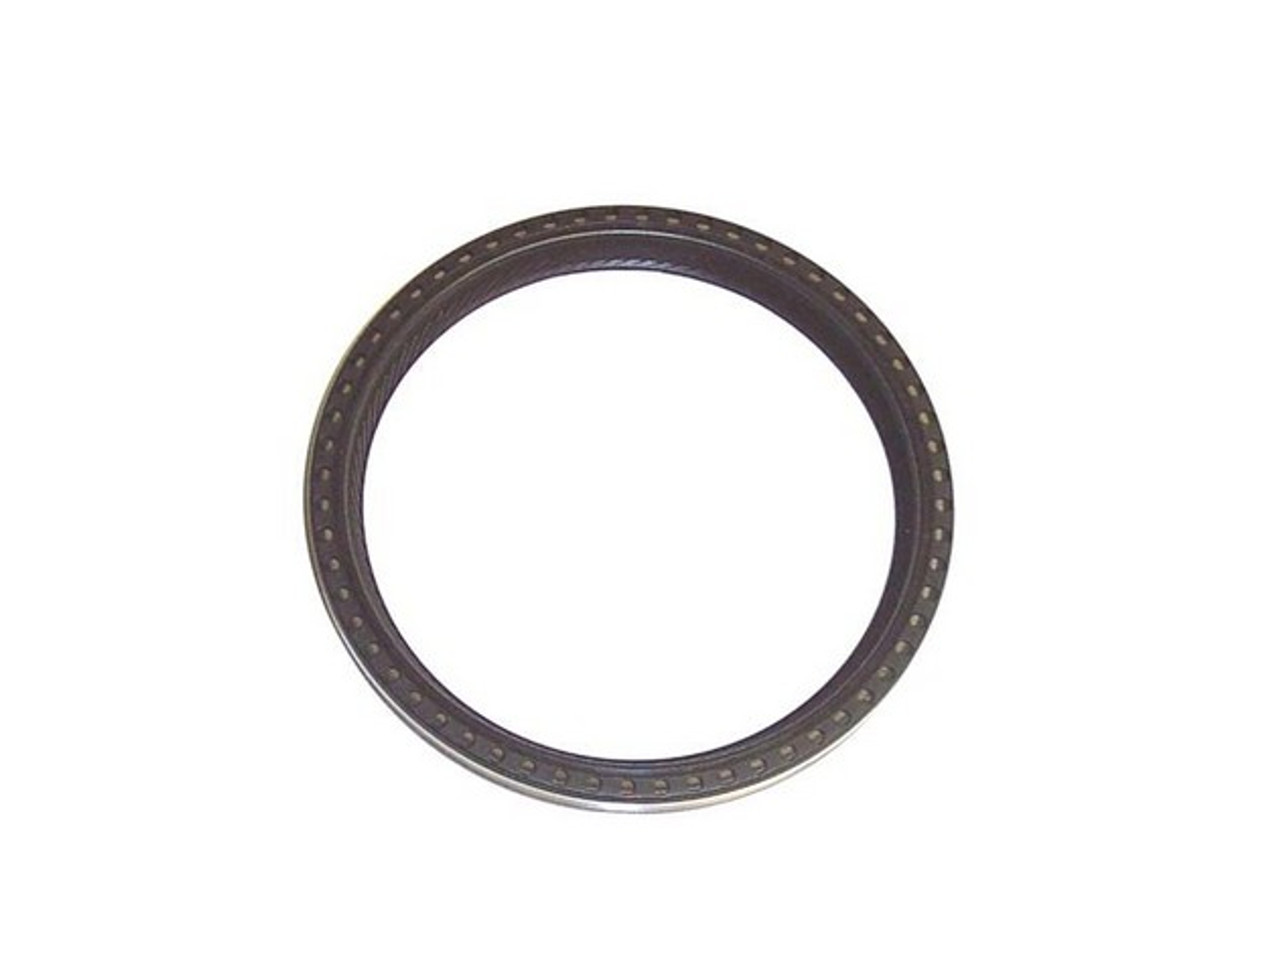 Crankshaft Seal 3.0L 2003 Jaguar S-Type - RM411.672